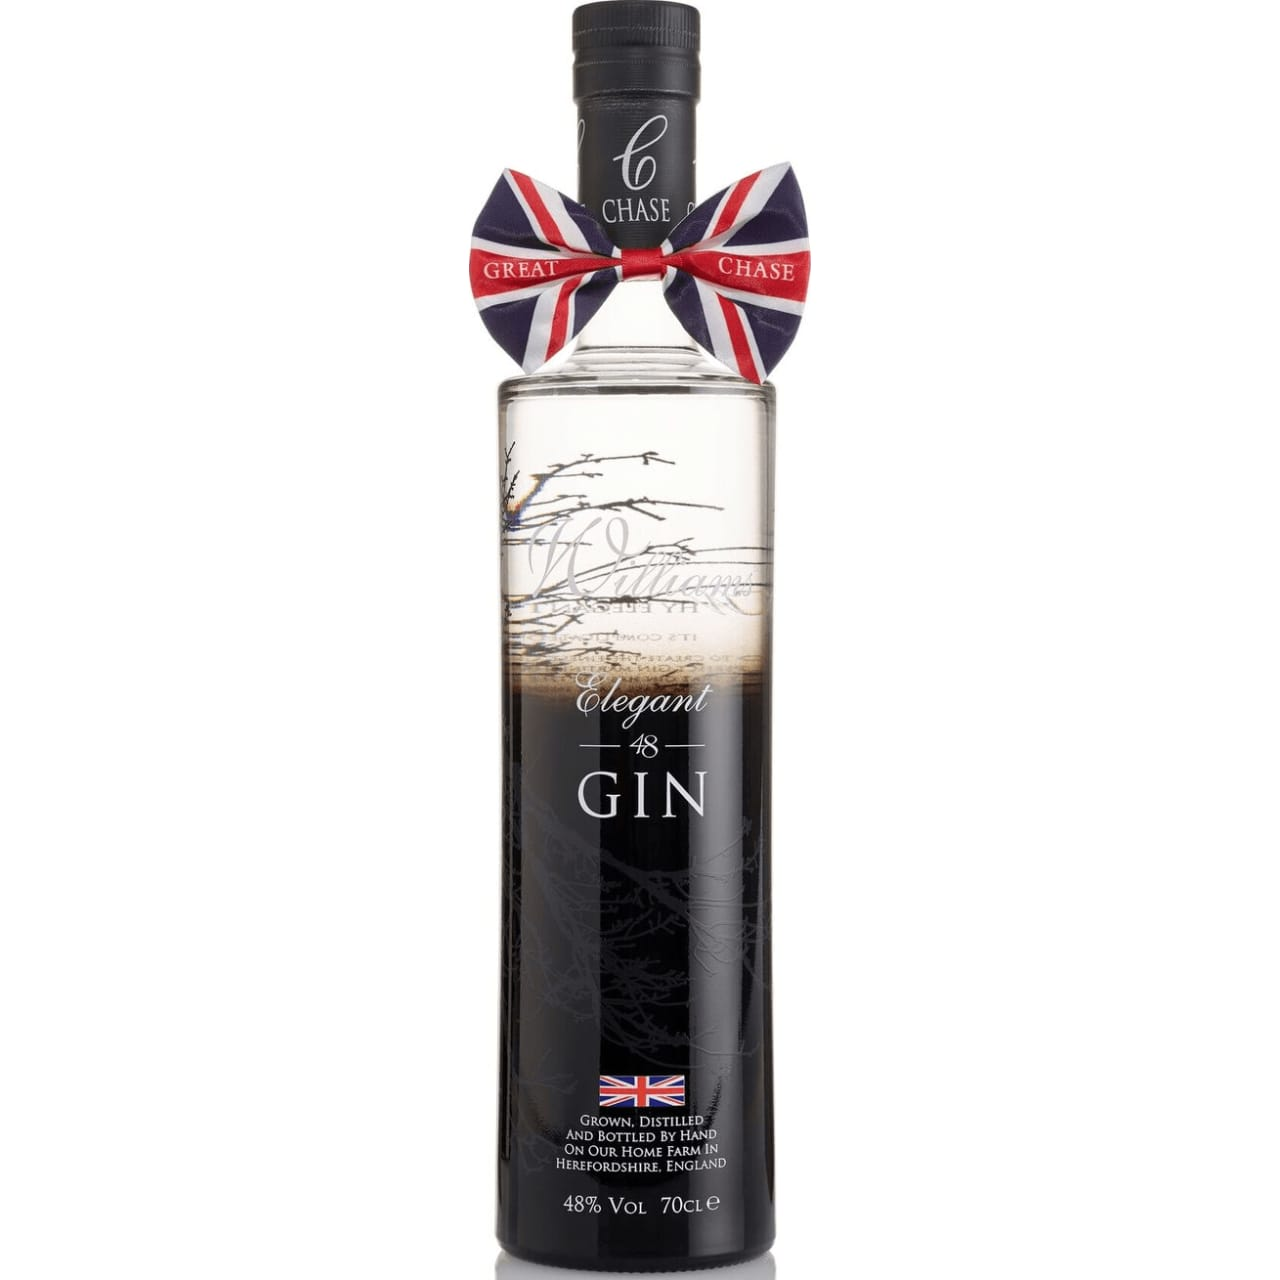 Product Image - William's Elegant 48 Gin